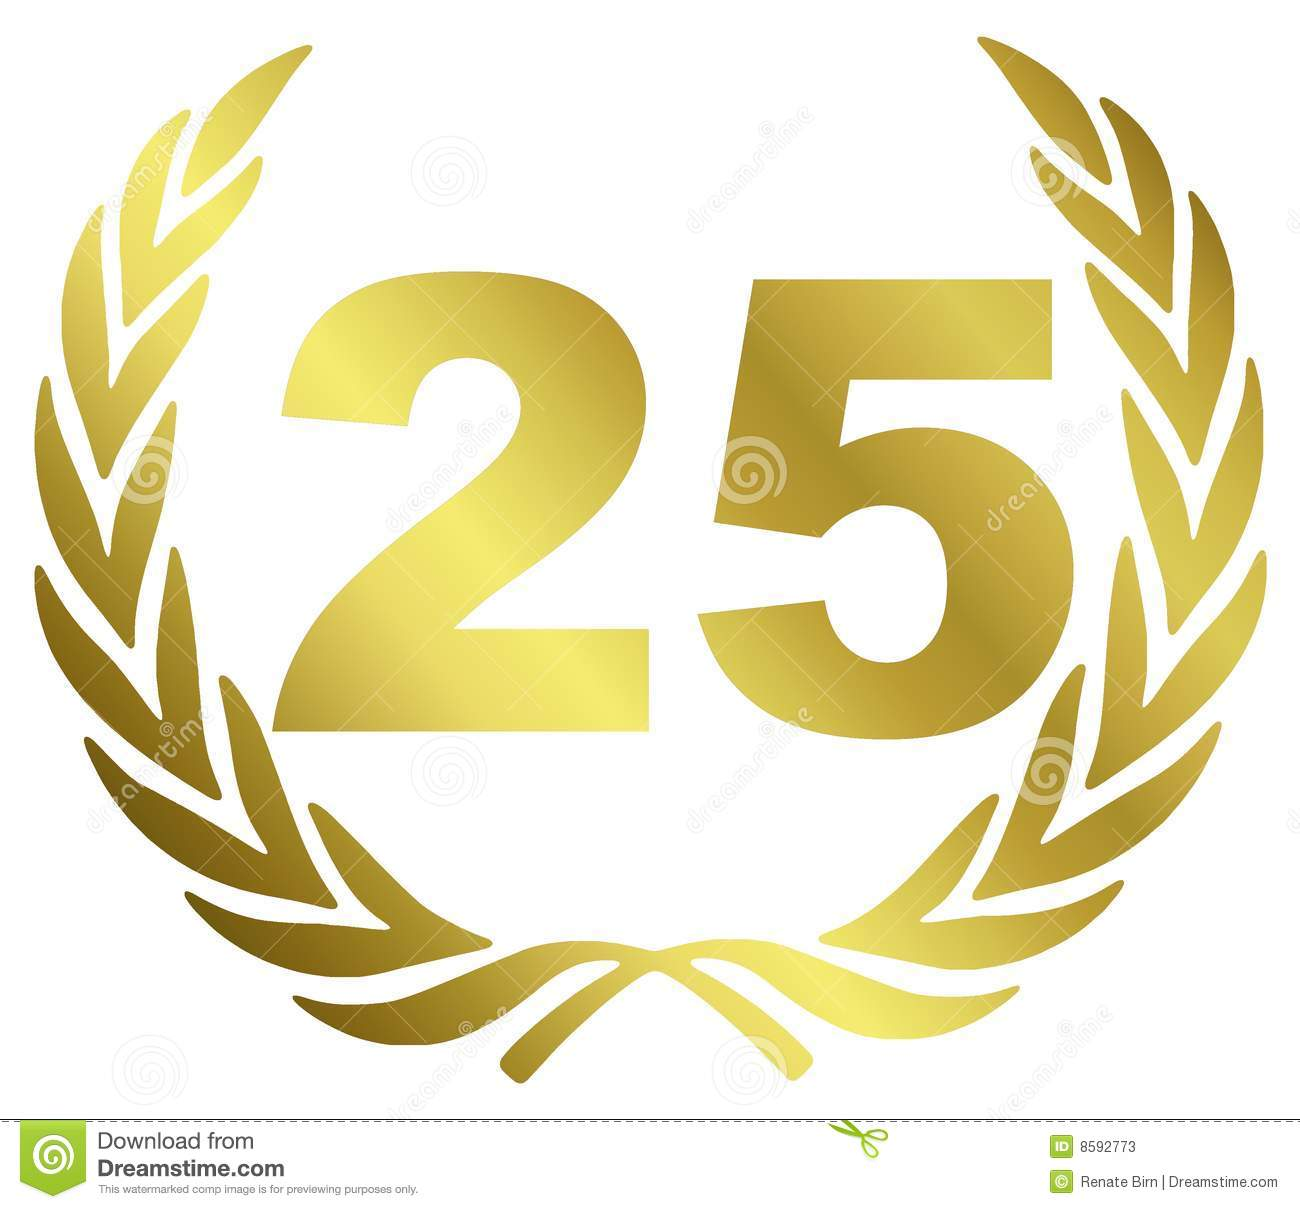 25 Anniversary Stock Illustration. Illustration Of